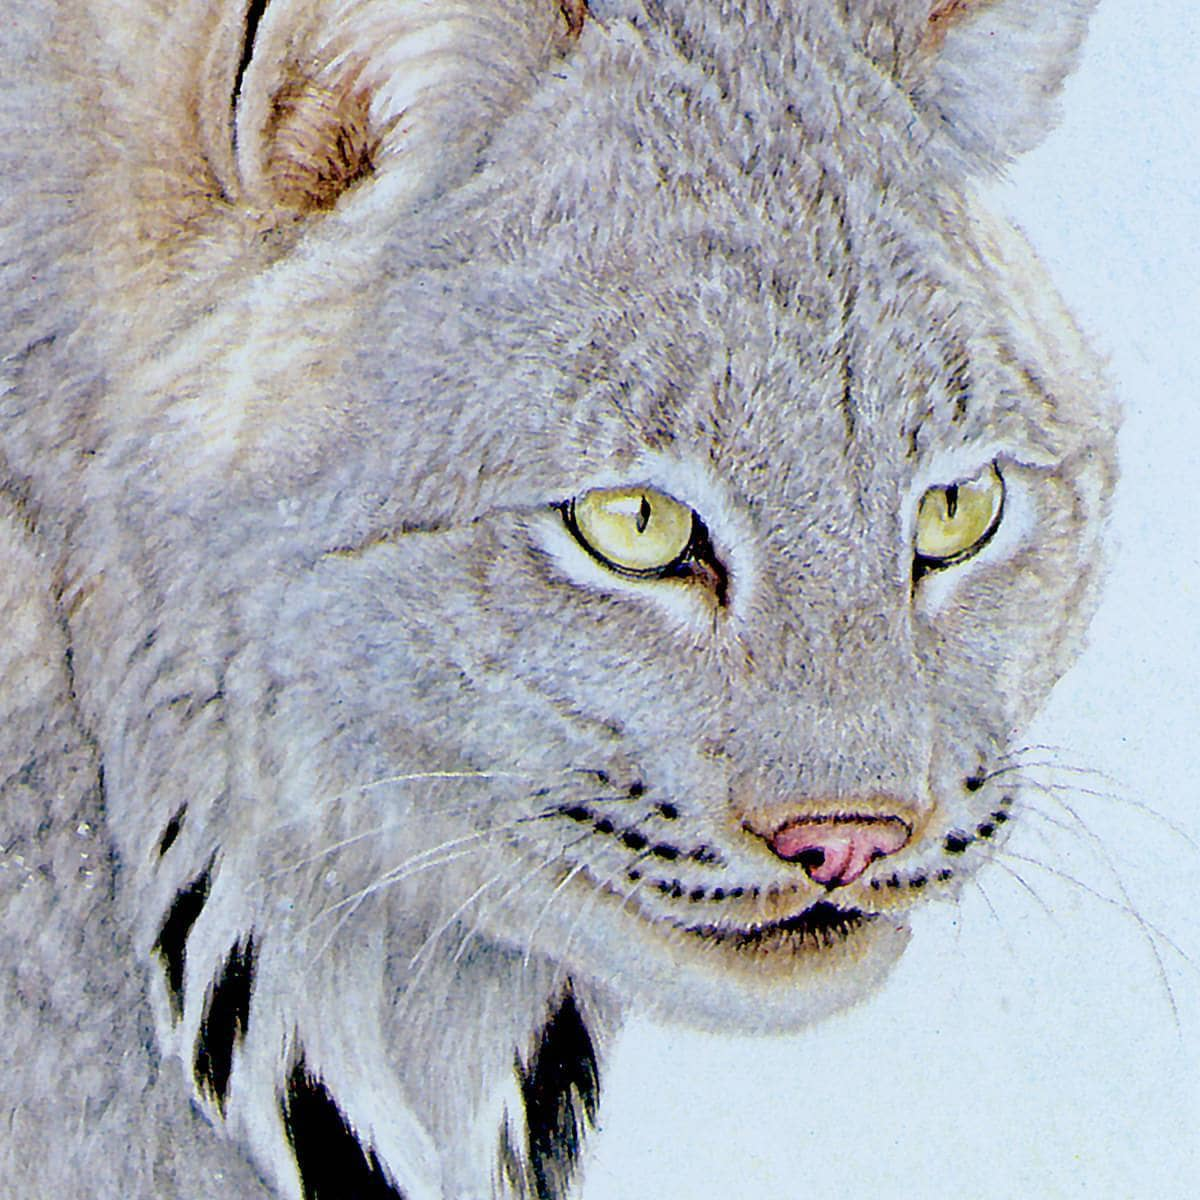 Canada Lynx - Art Print by Glen Loates from the Glen Loates Store